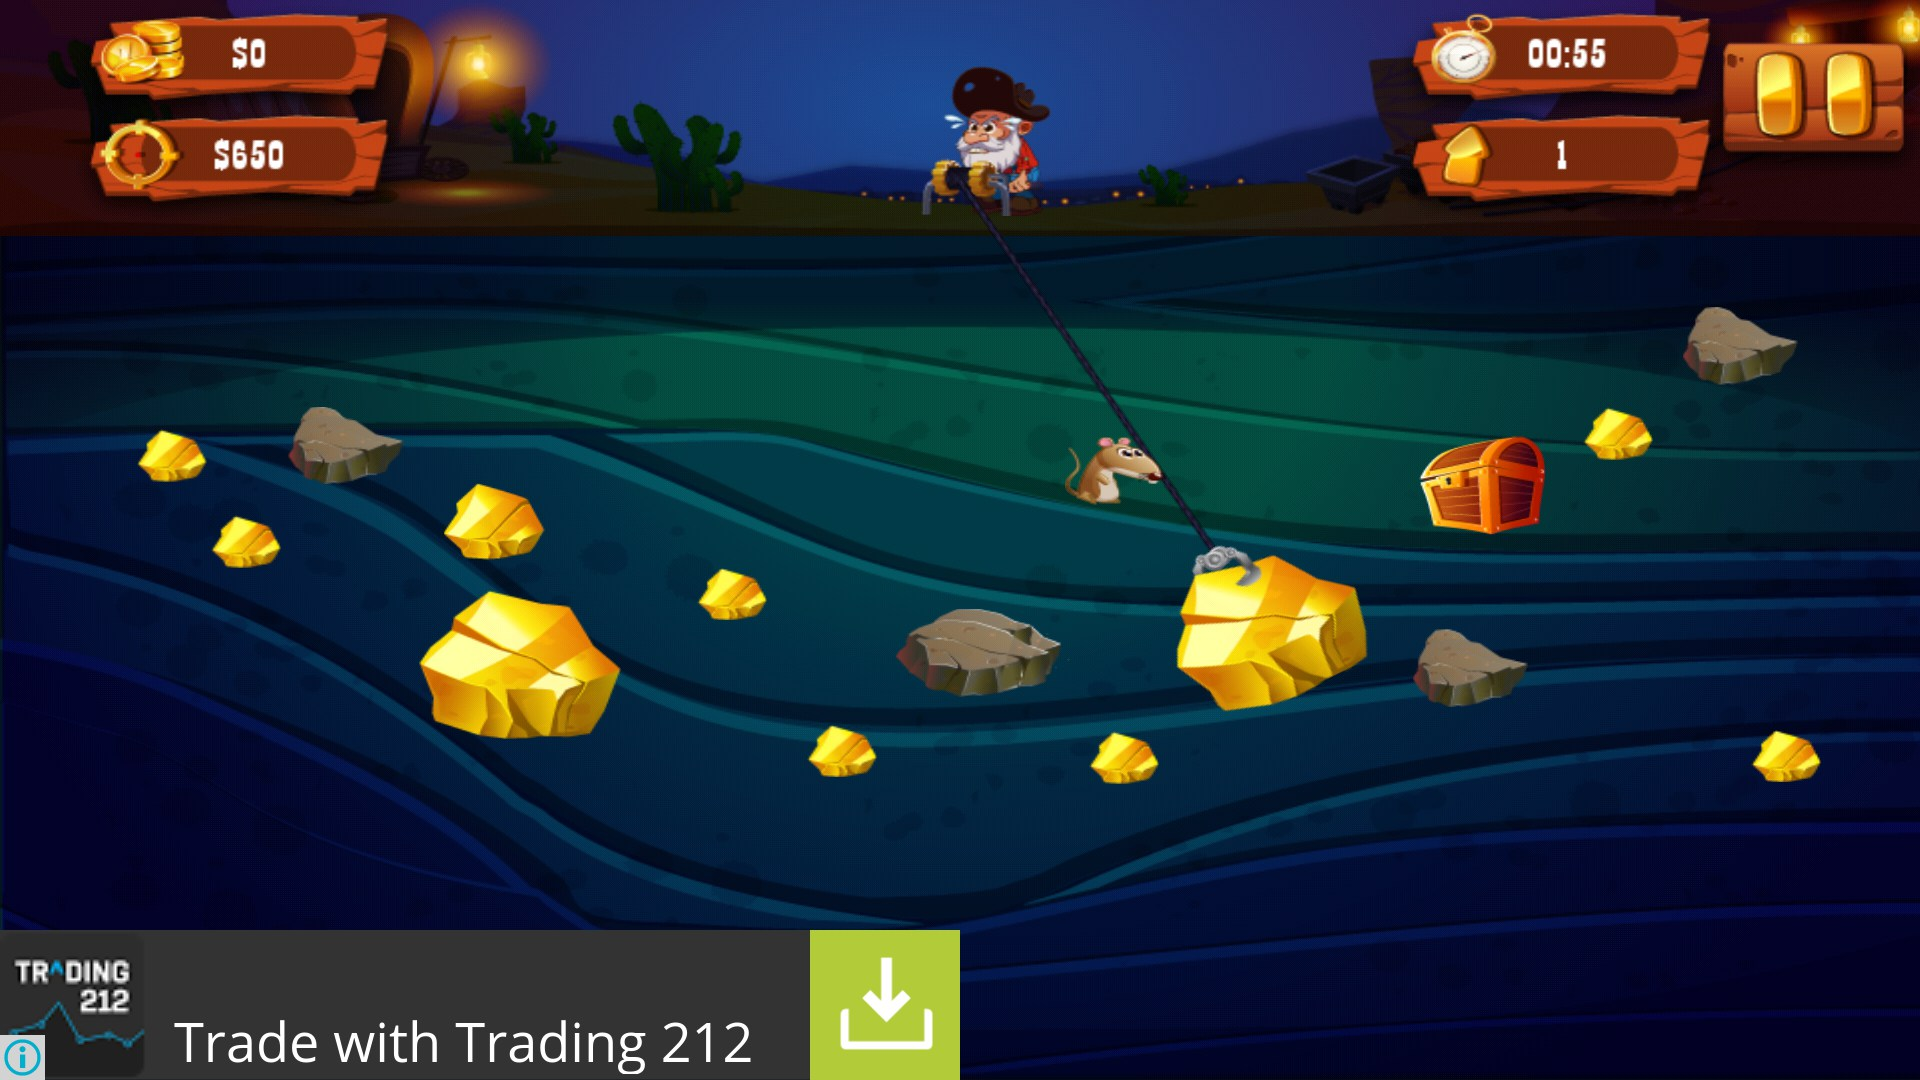 Gold Miner Adventure - Games for Android 2018 - Free